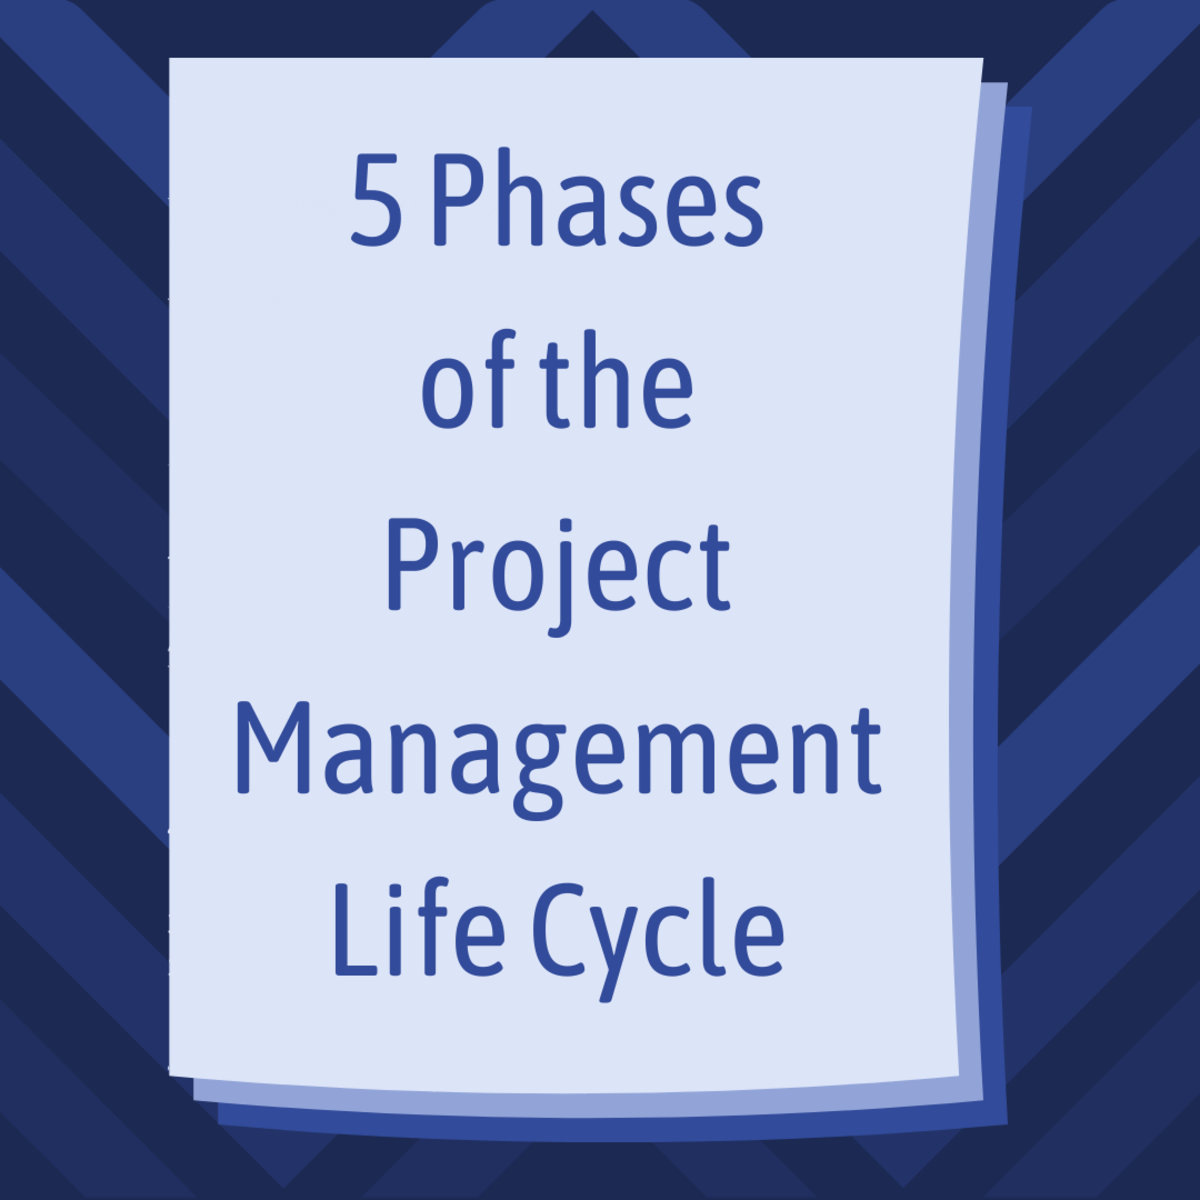 What Is the Project Management Life Cycle?